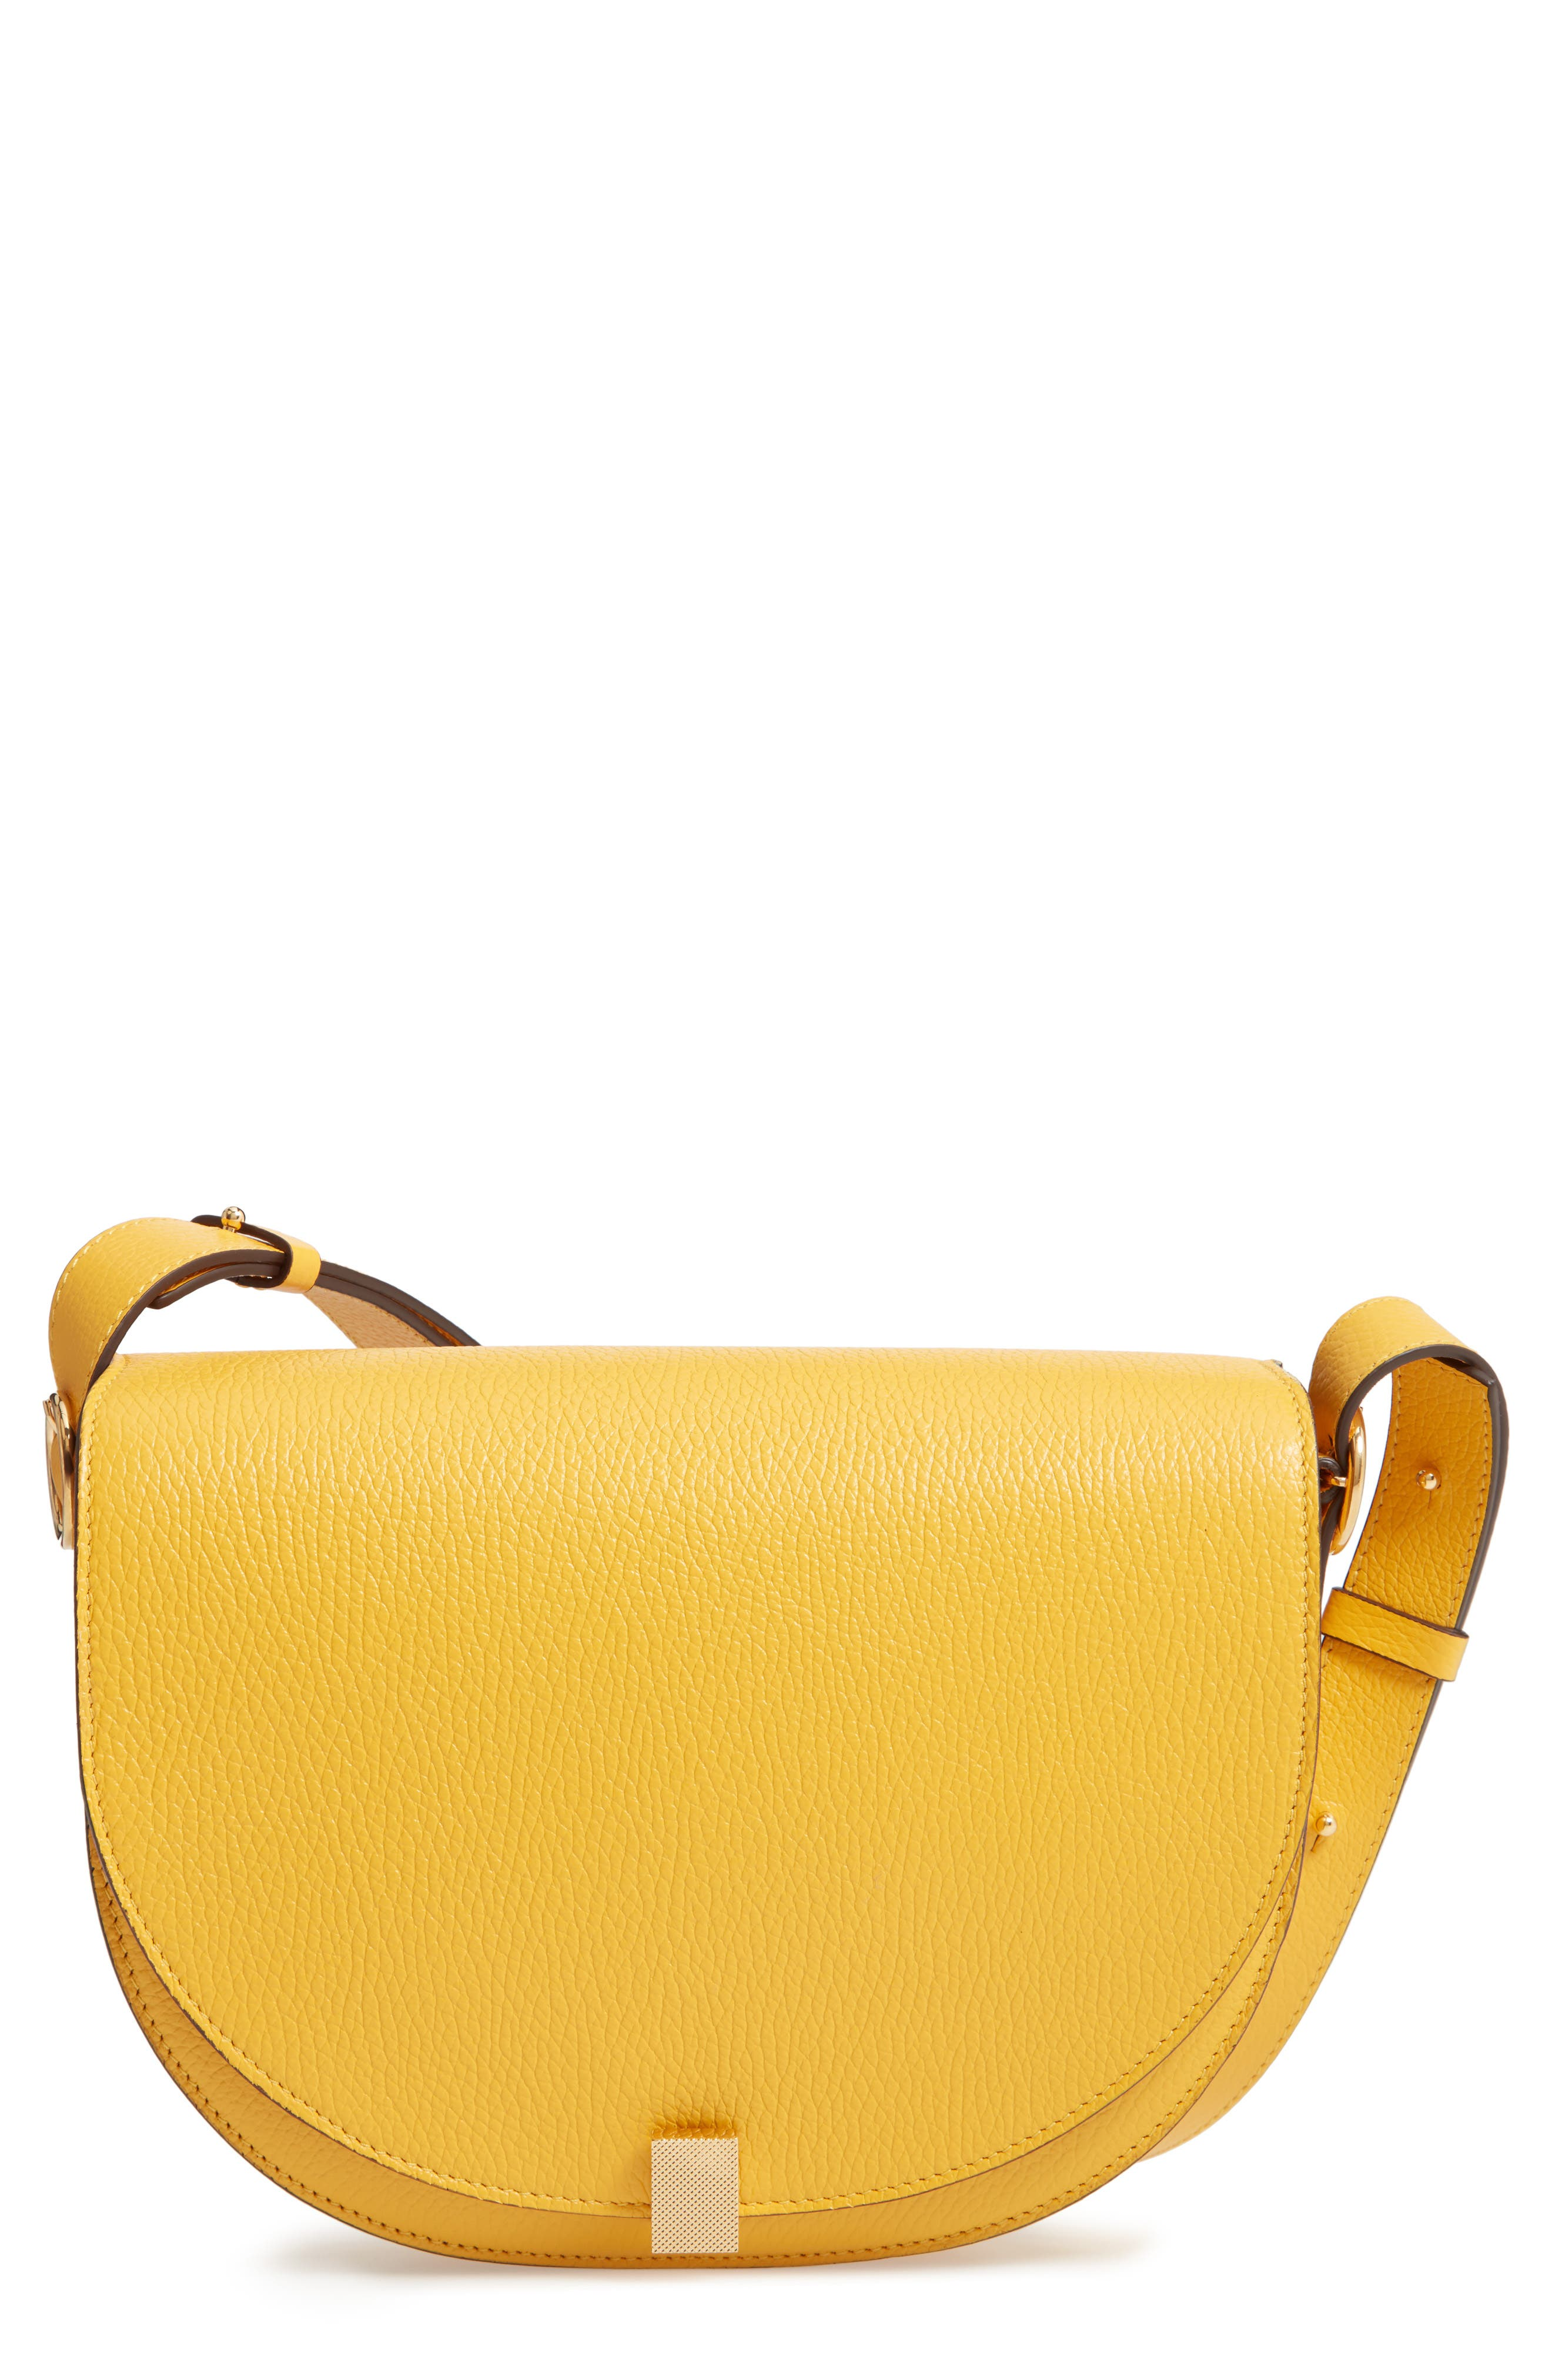 VICTORIA BECKHAM, Half Moon Box Shoulder Bag, Main thumbnail 1, color, YELLOW